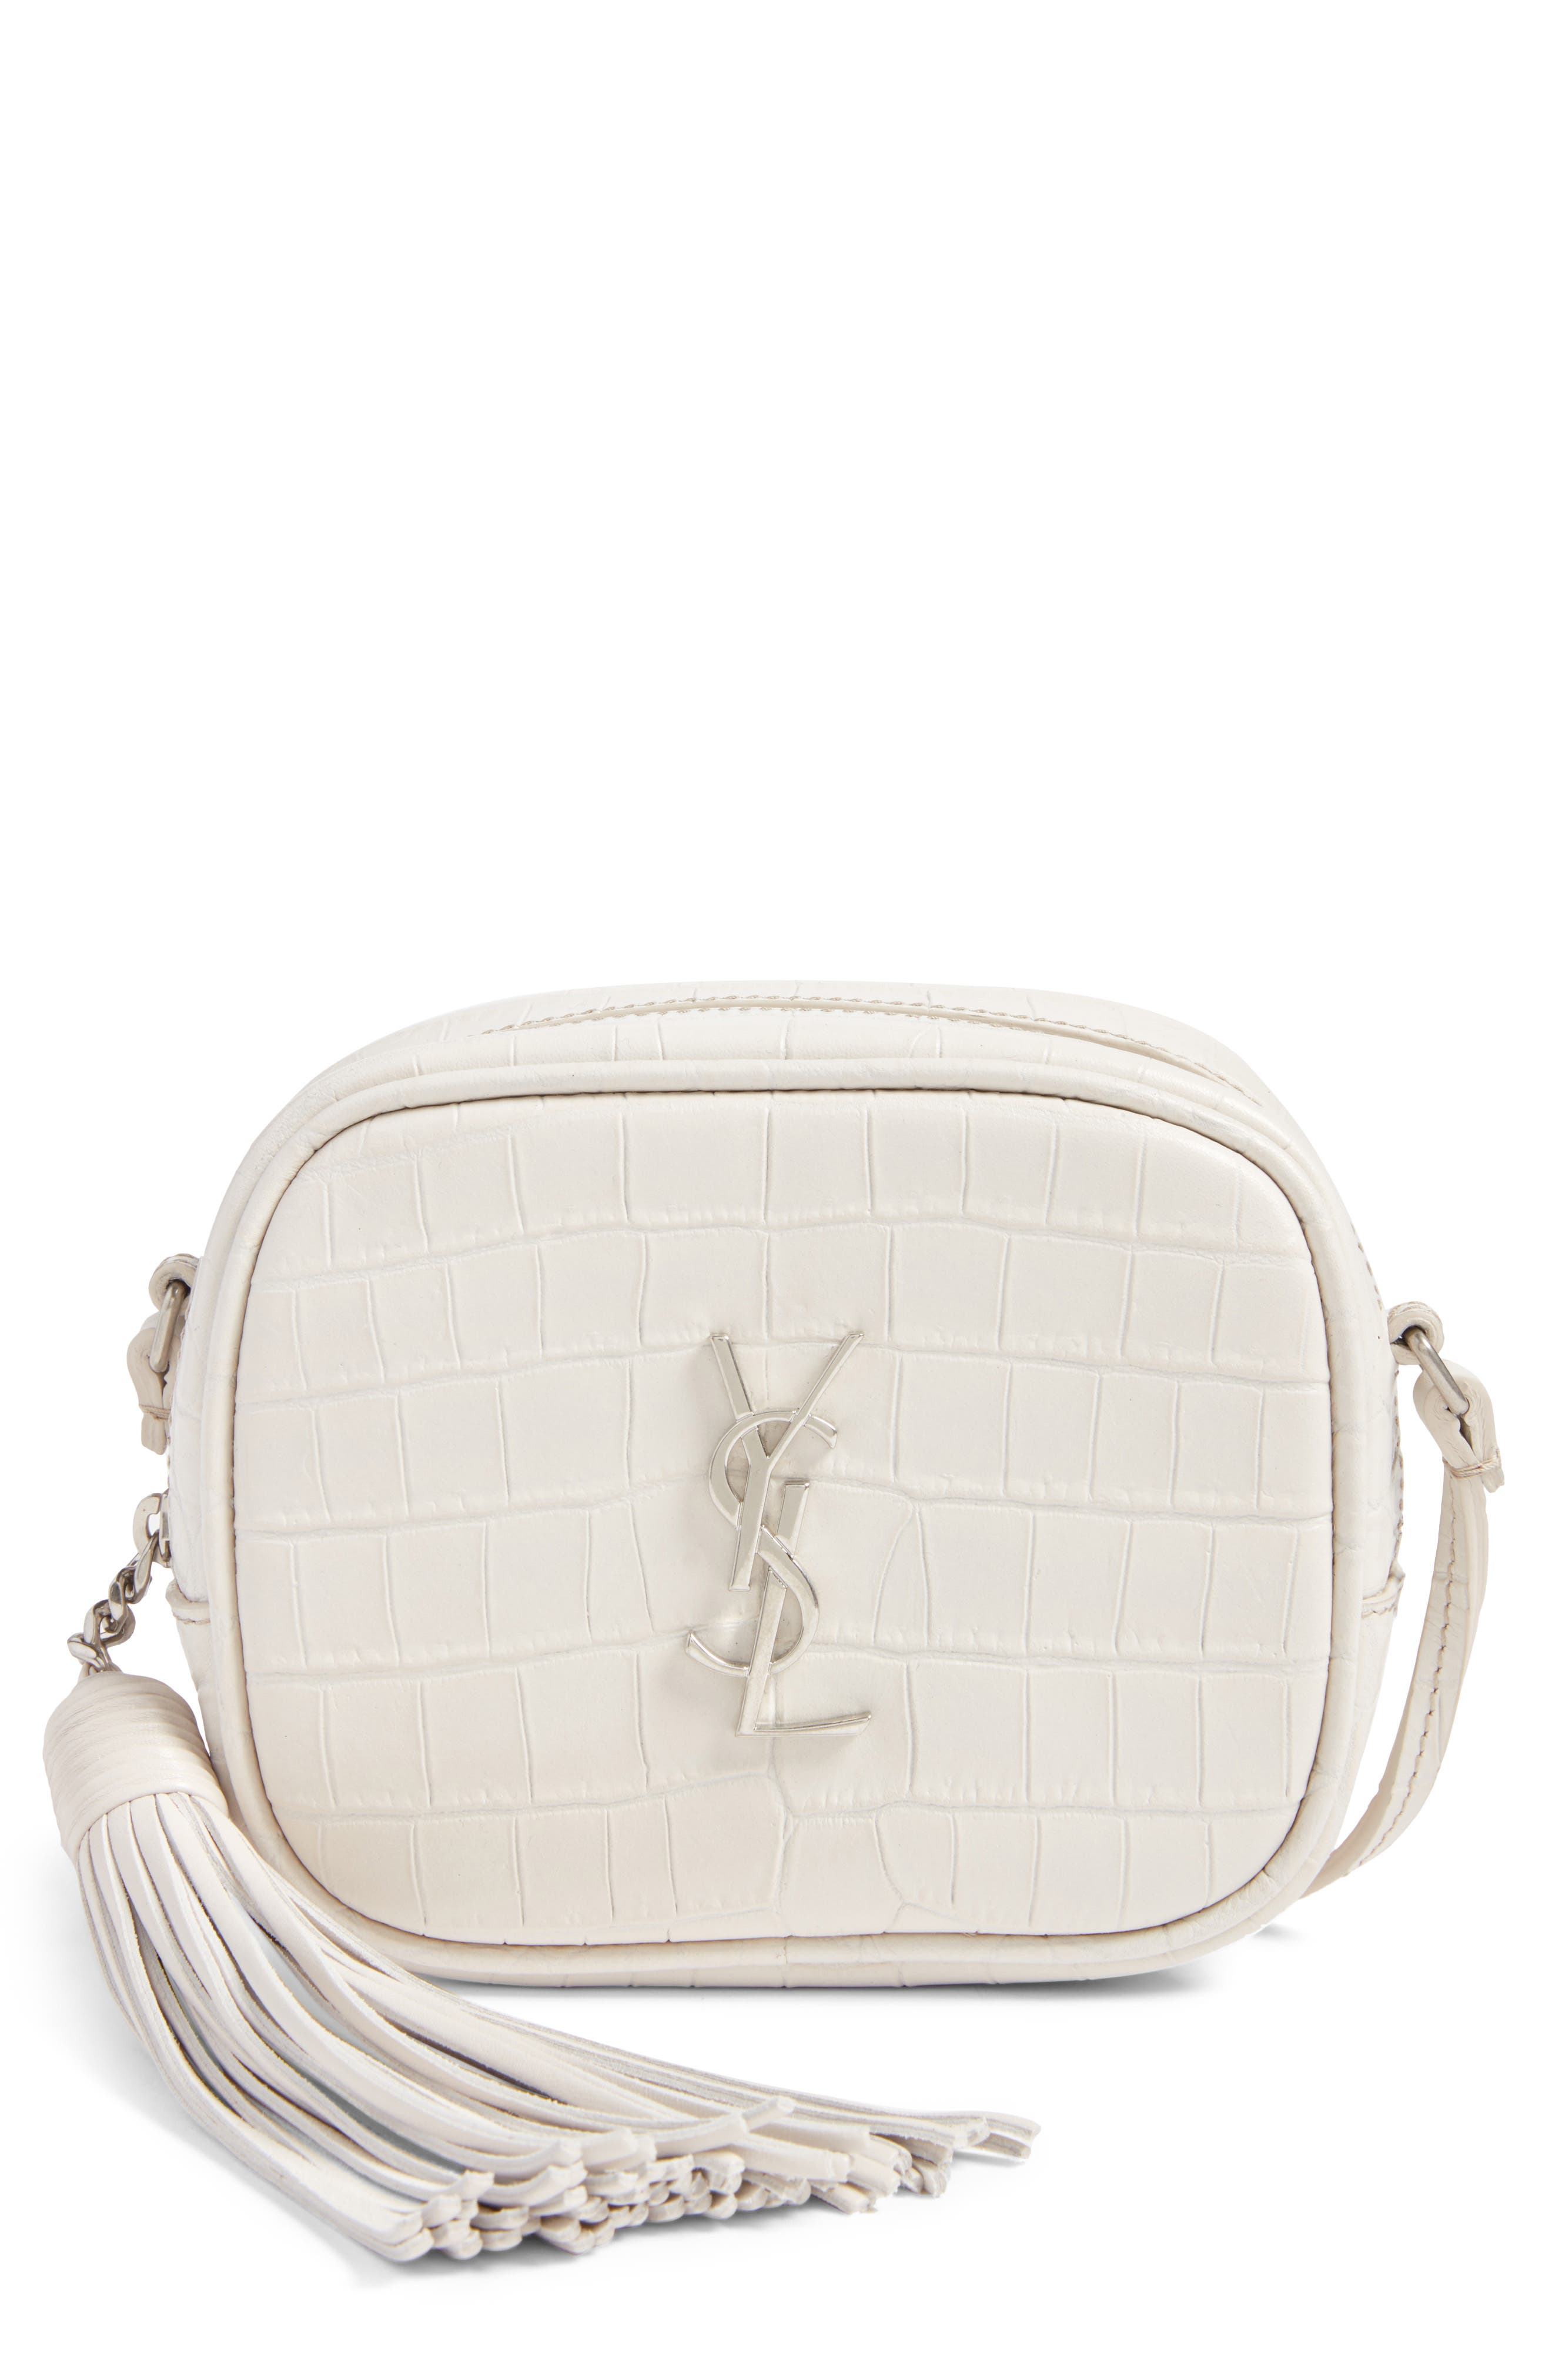 Monogram Blogger Leather Crossbody Bag,                         Main,                         color, Icy White